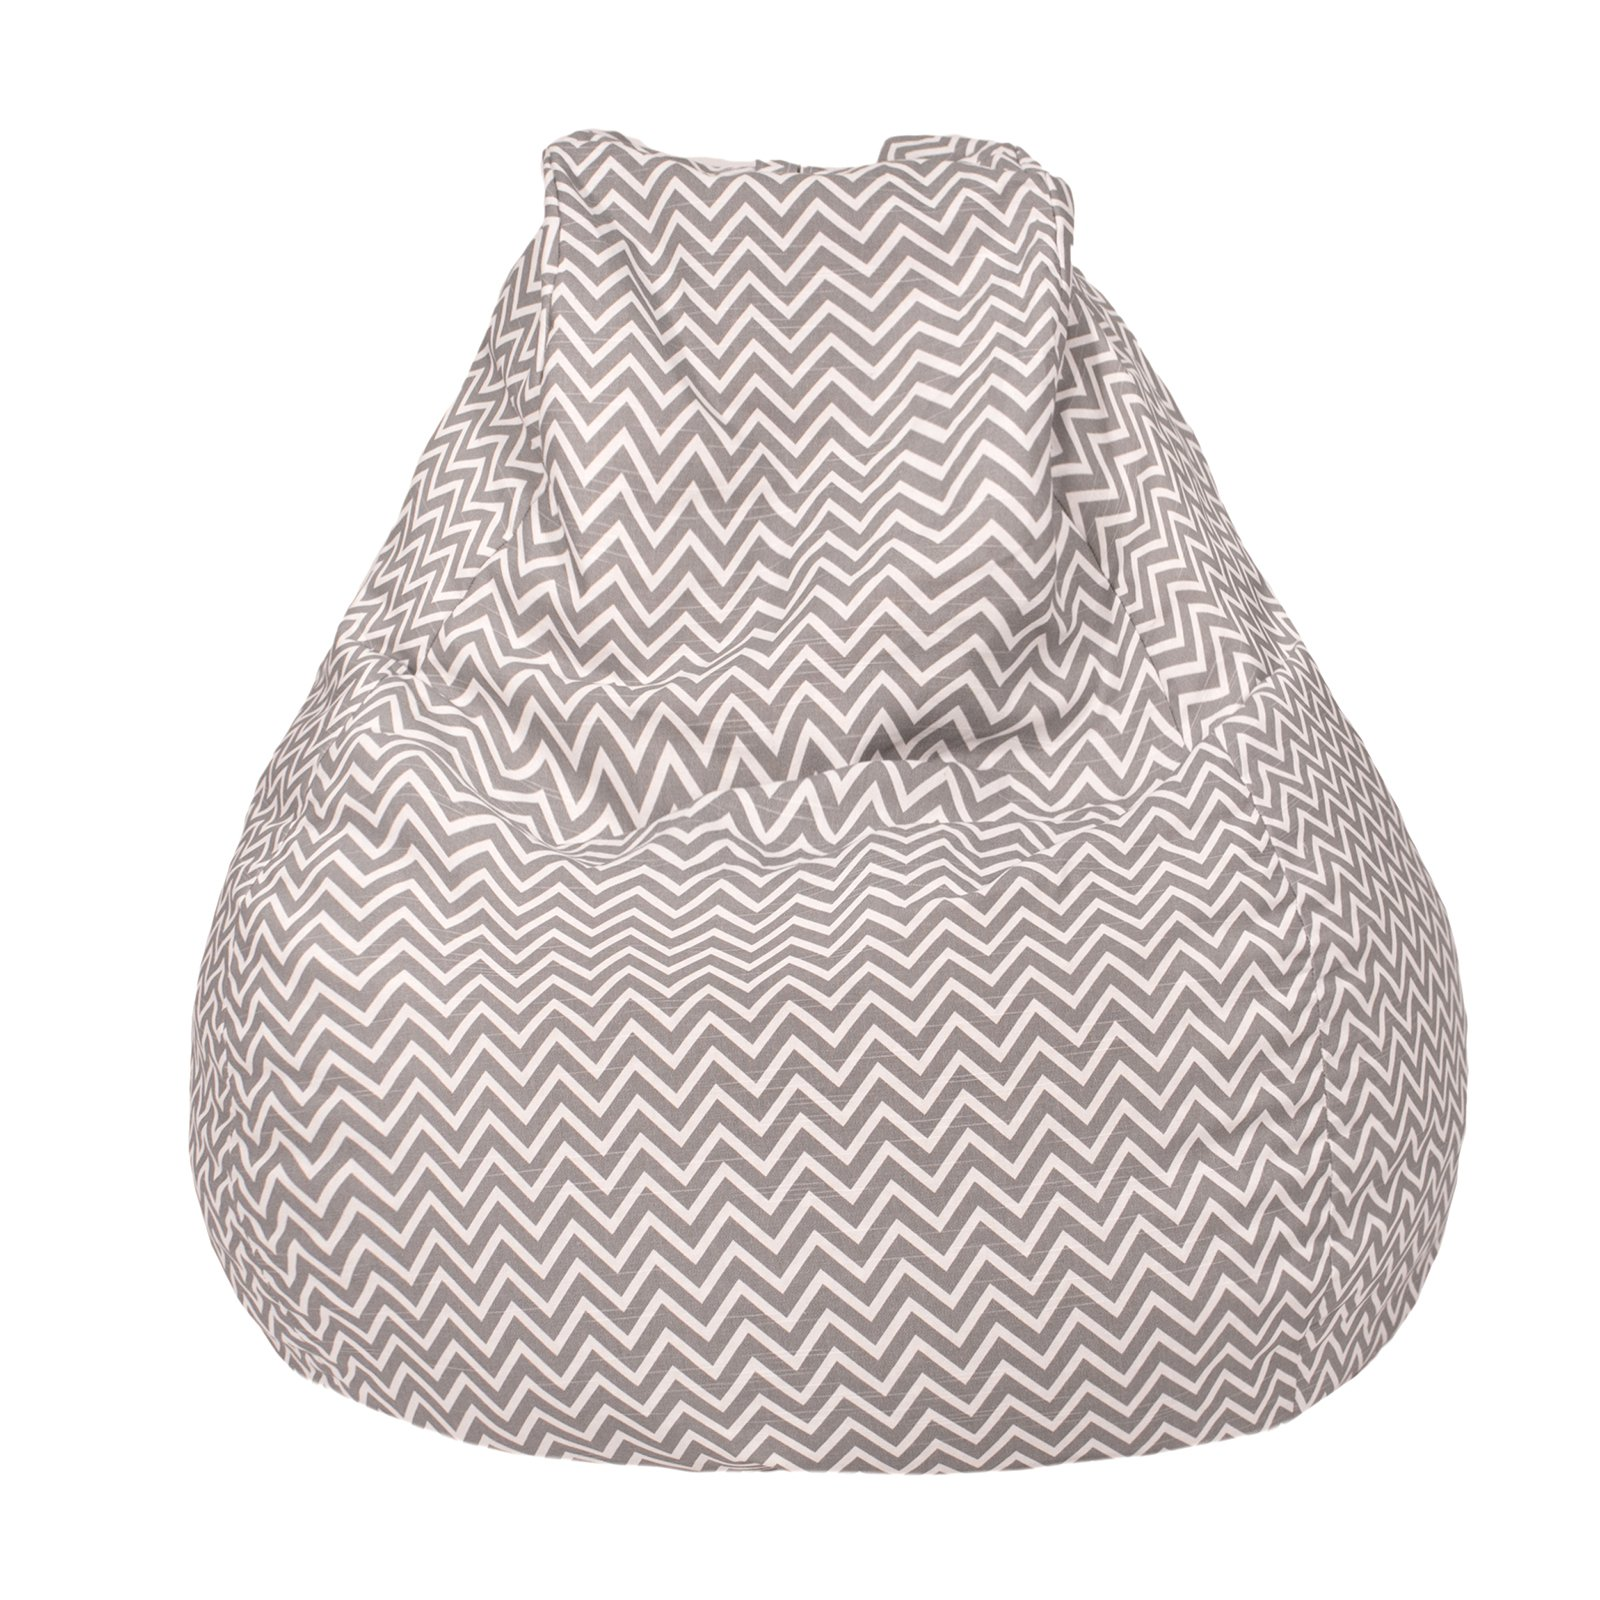 Gold Medal Cosmo ZigZag Large Teardrop Bean Bag